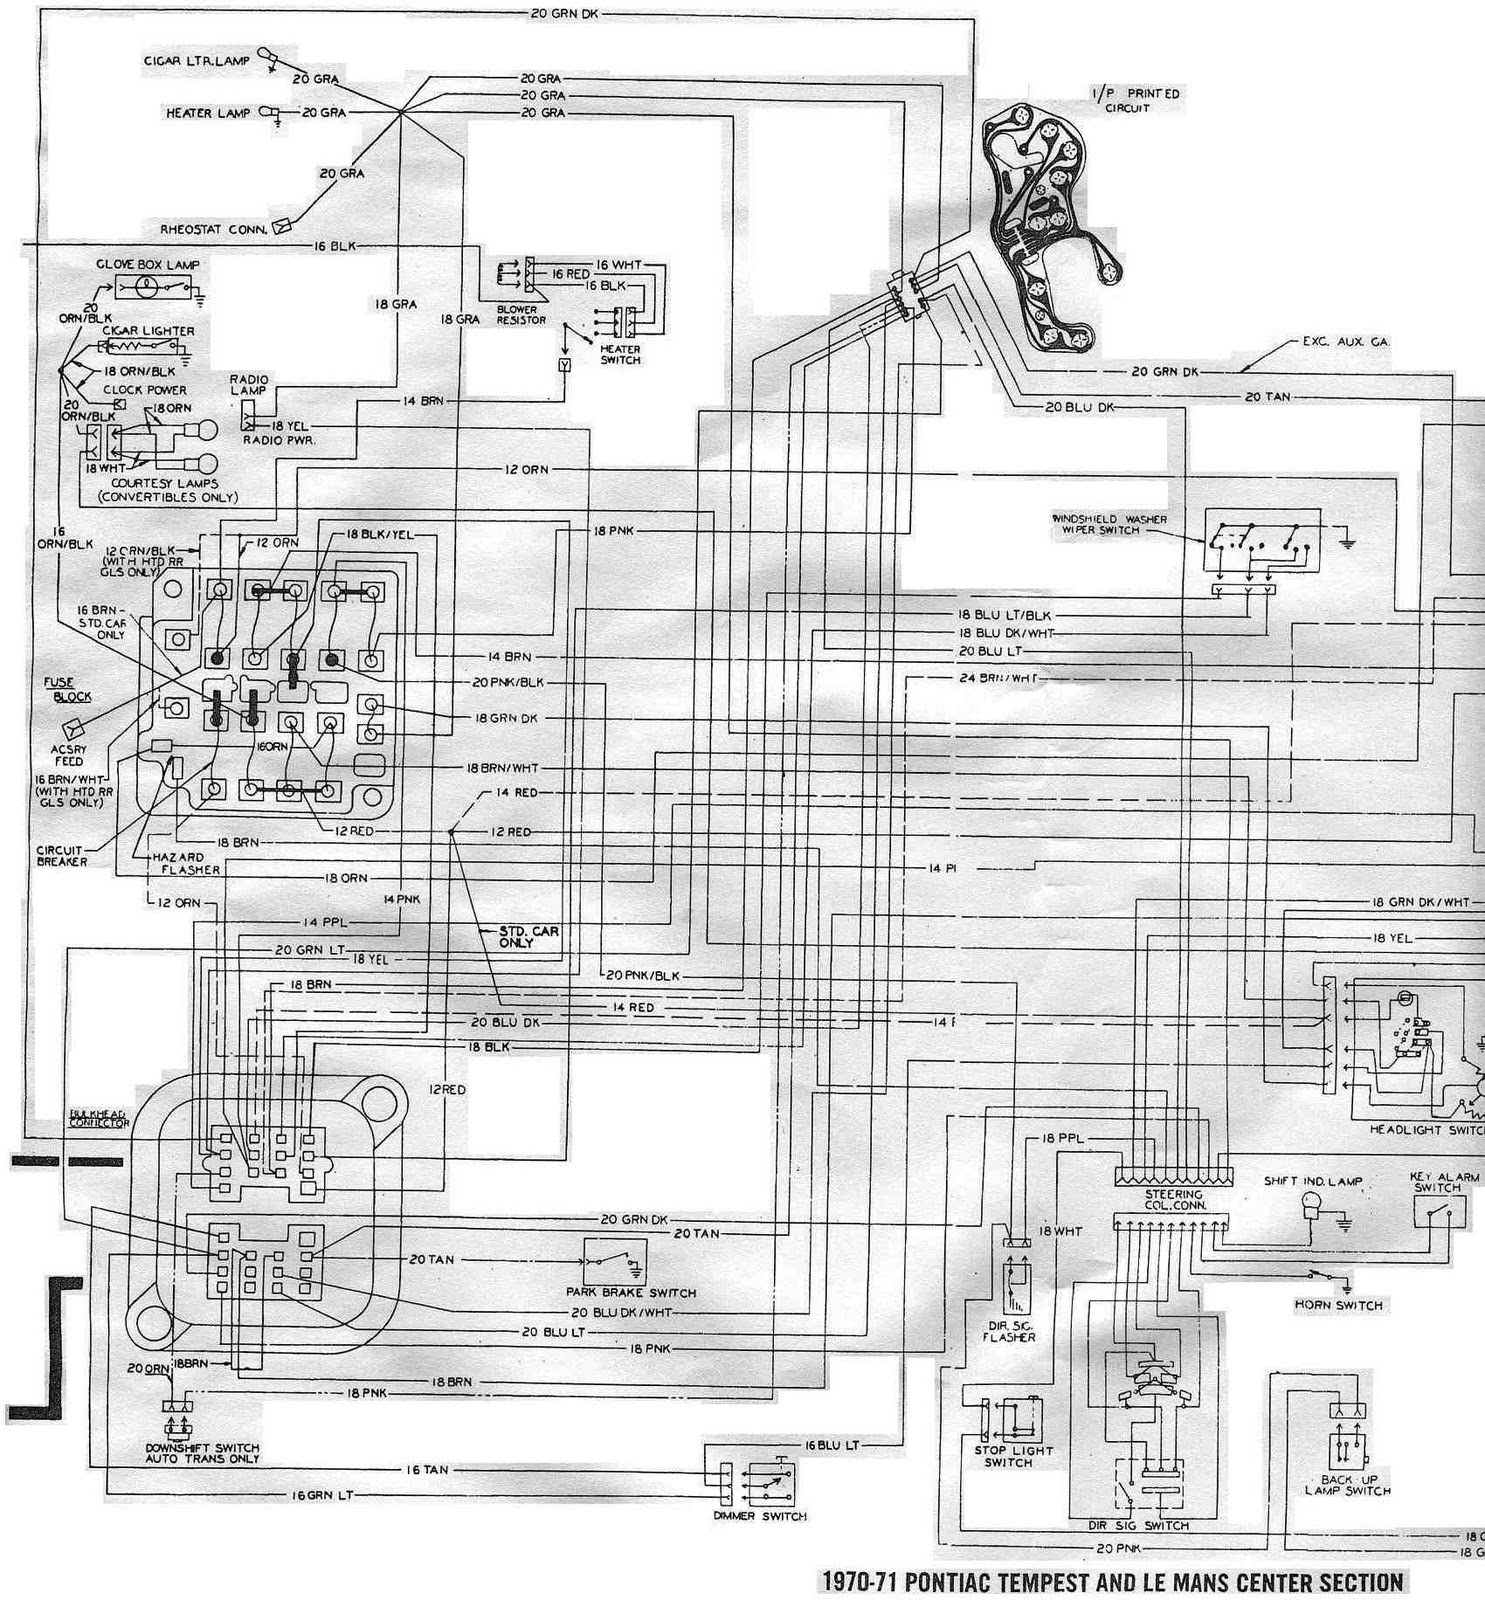 Pontiac+Tempest+and+LeMans+1970 1971+Center+Section+Schematic+Diagram pontiac tempest and lemans 1970 1971 center section schematic 1967 pontiac gto wiring diagram at bayanpartner.co